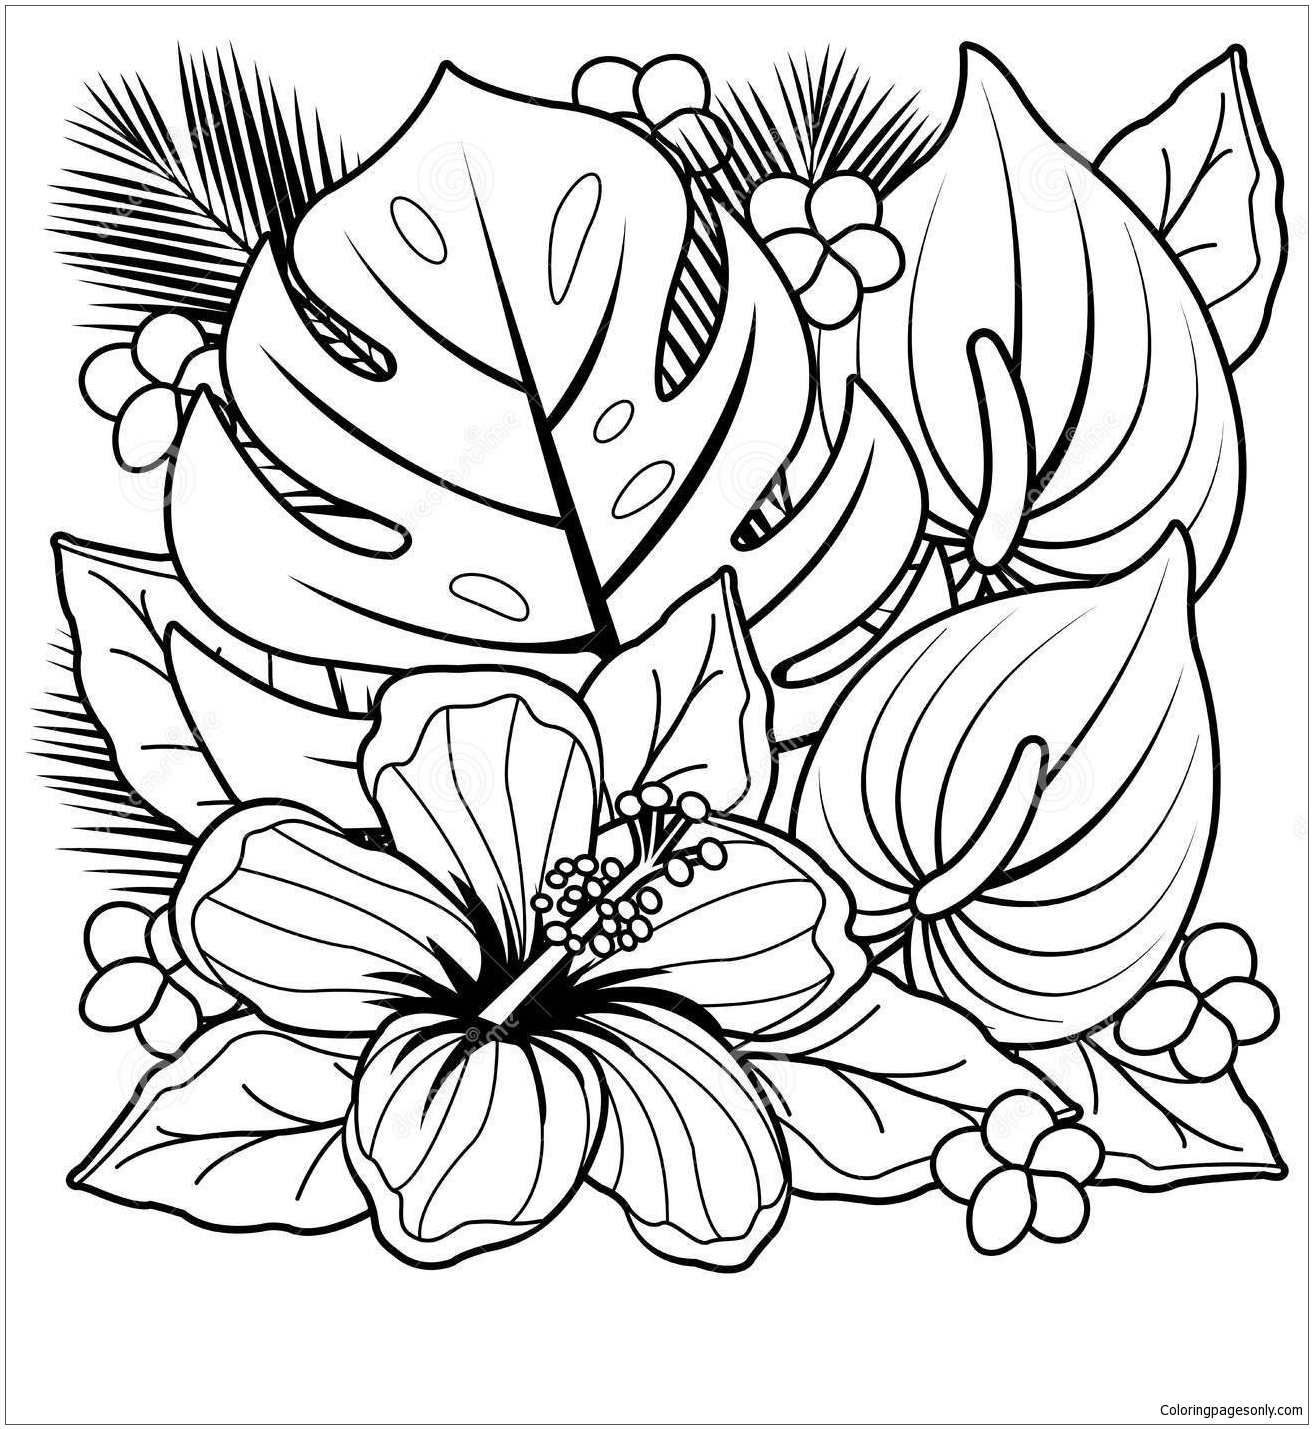 Tropical Plants And Hibiscus Flowers Coloring Pages Flower Coloring Pages Free Printable Coloring Pages Online